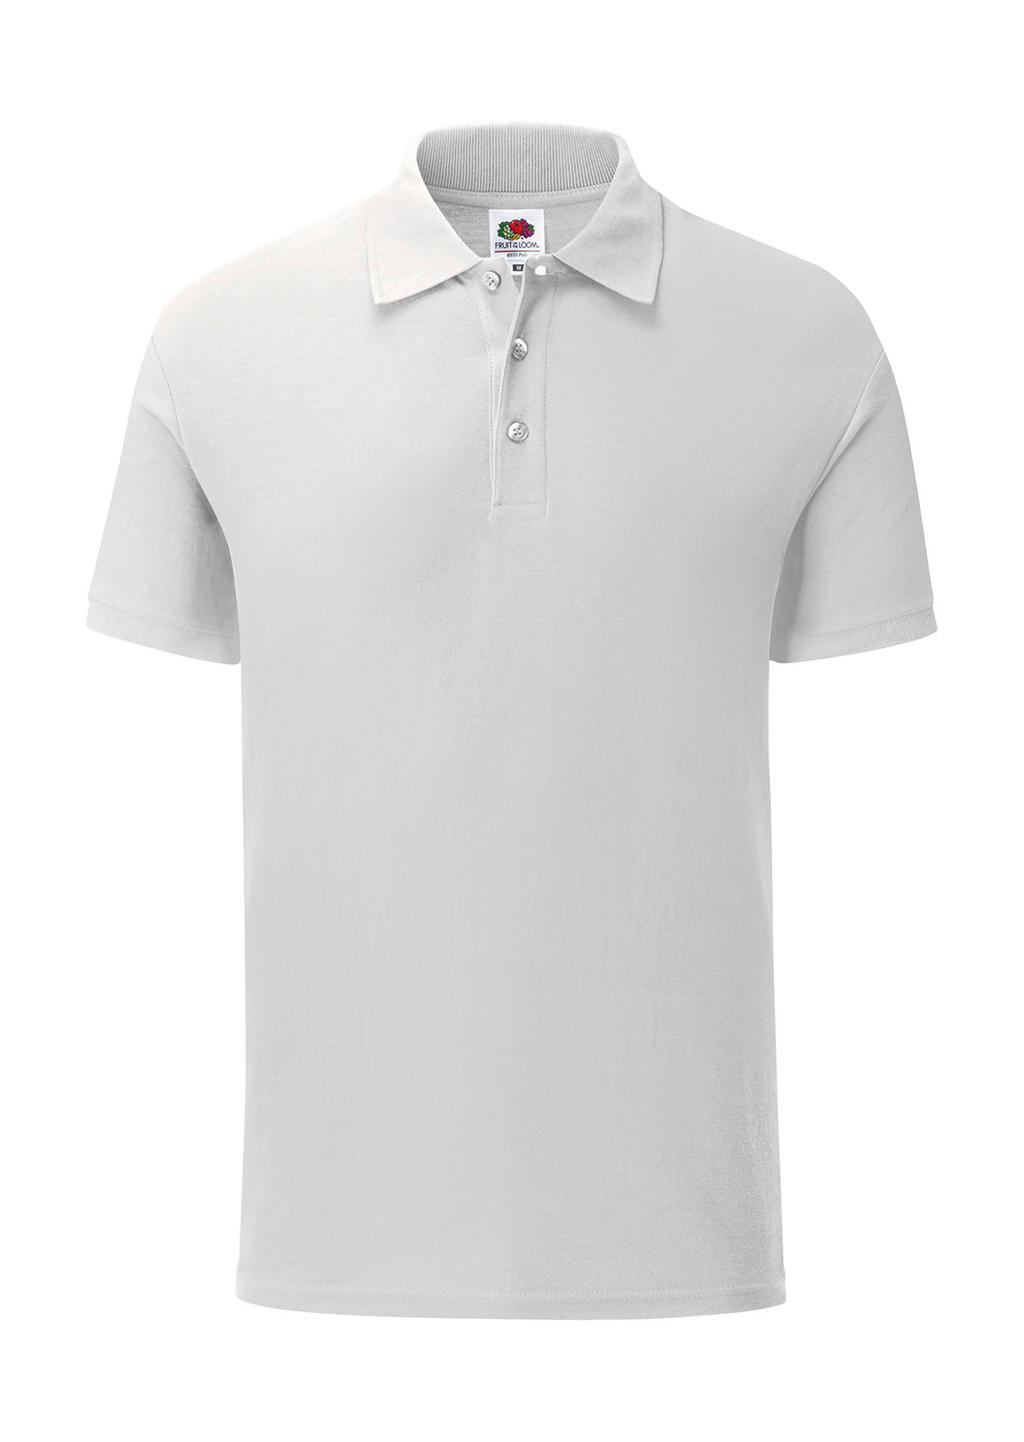 65/35 Tailored Fit Polo